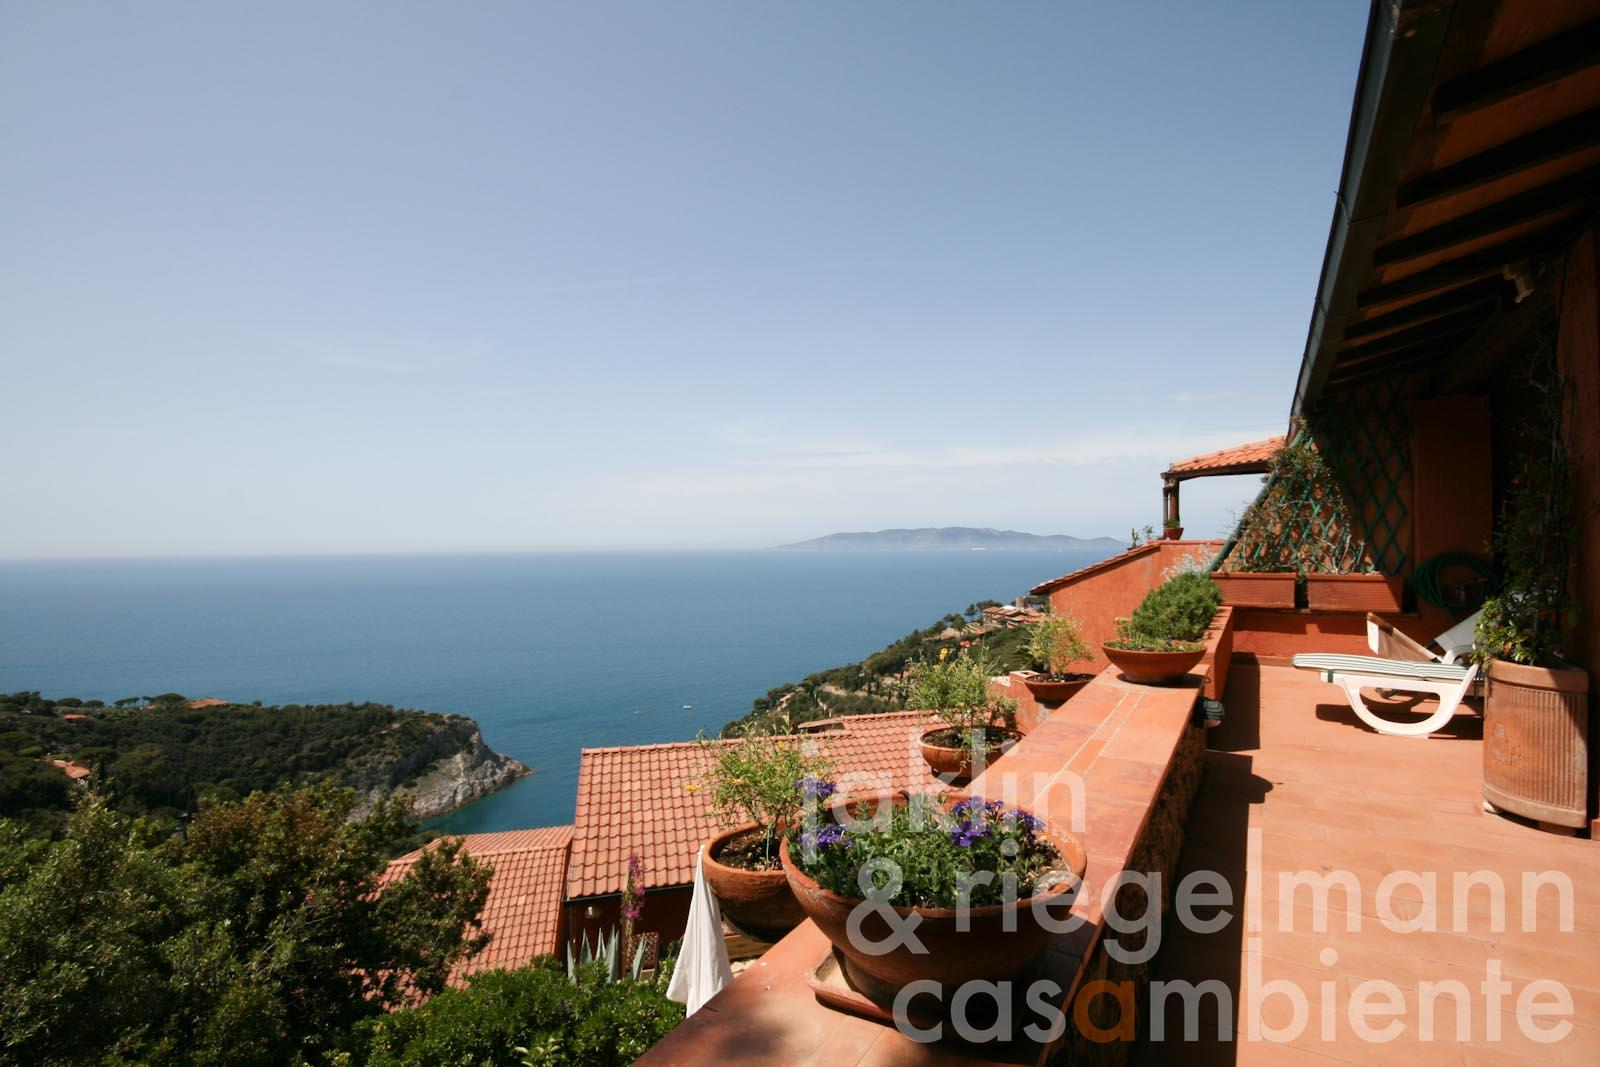 The holiday apartment for sale with large terraces and stunning views onto Giglio Island